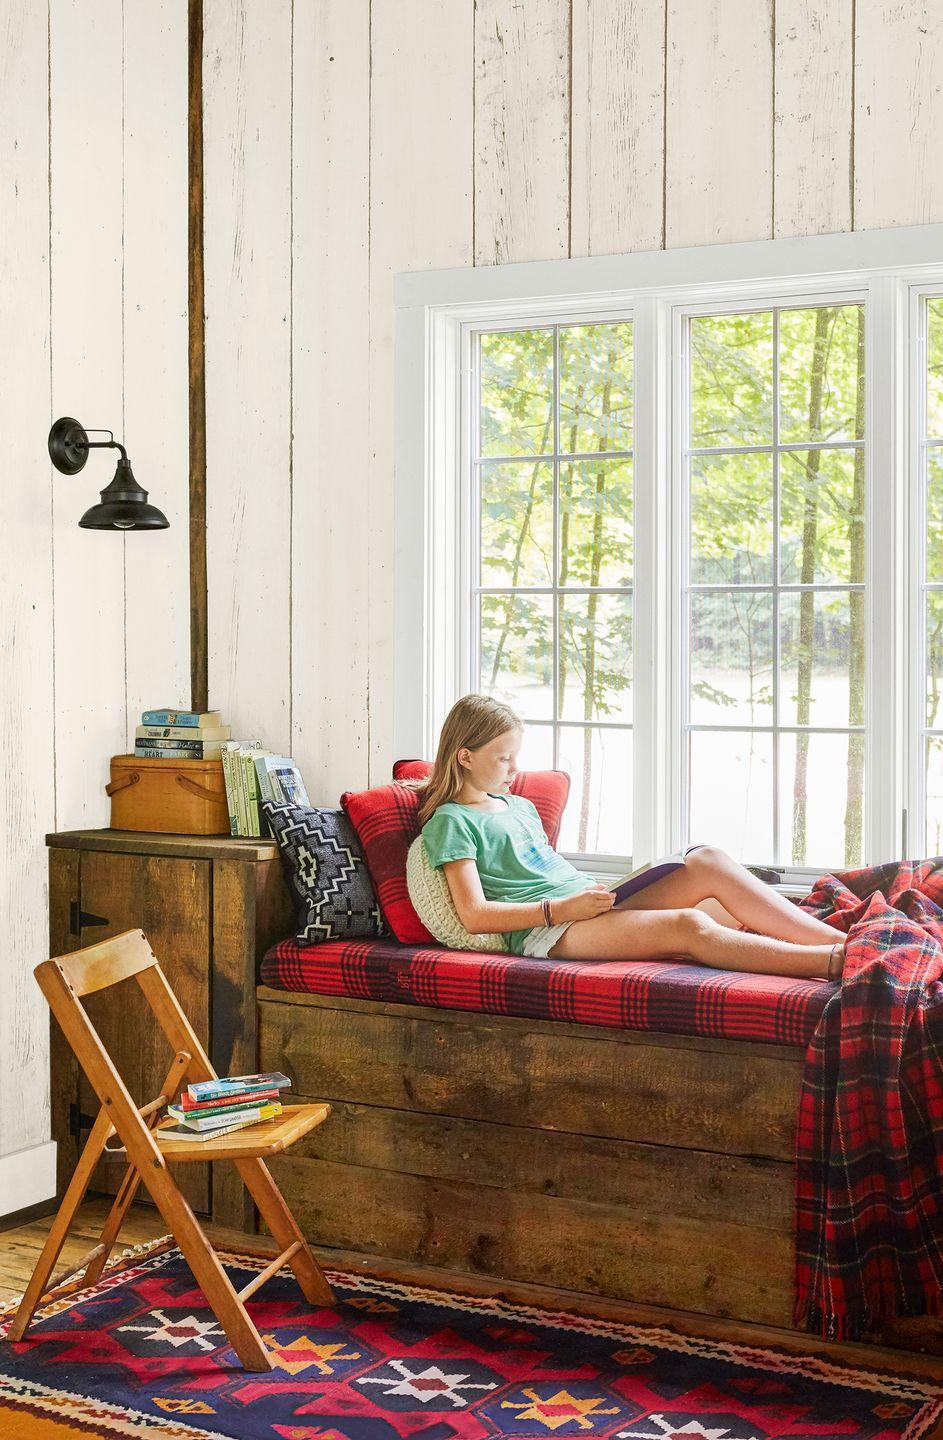 <p>A mix of wood tones, complemented by layers of tartan fabric, steal the show in this reading nook. </p>